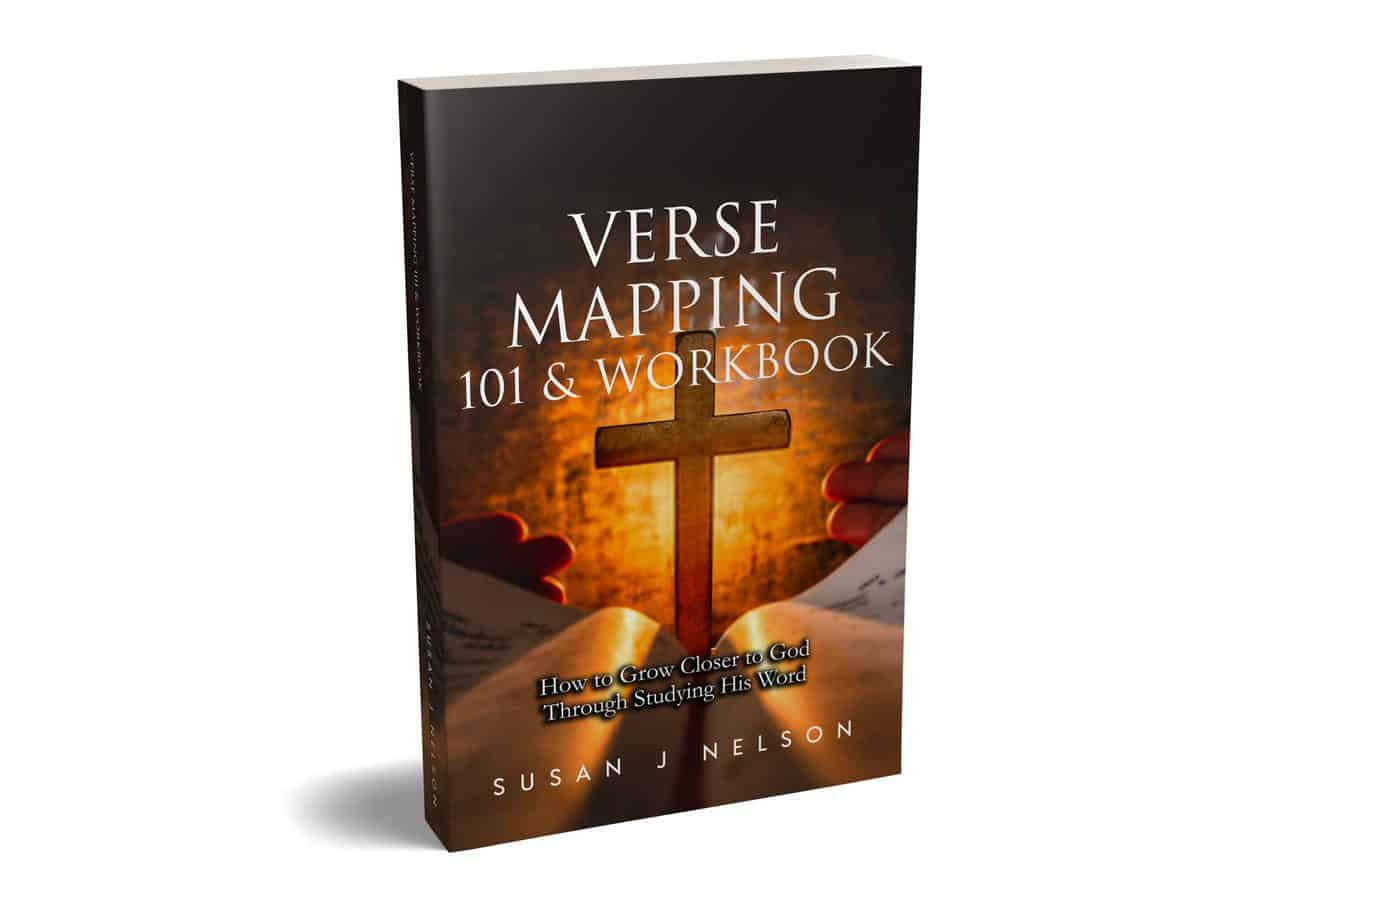 Verse mapping book cover